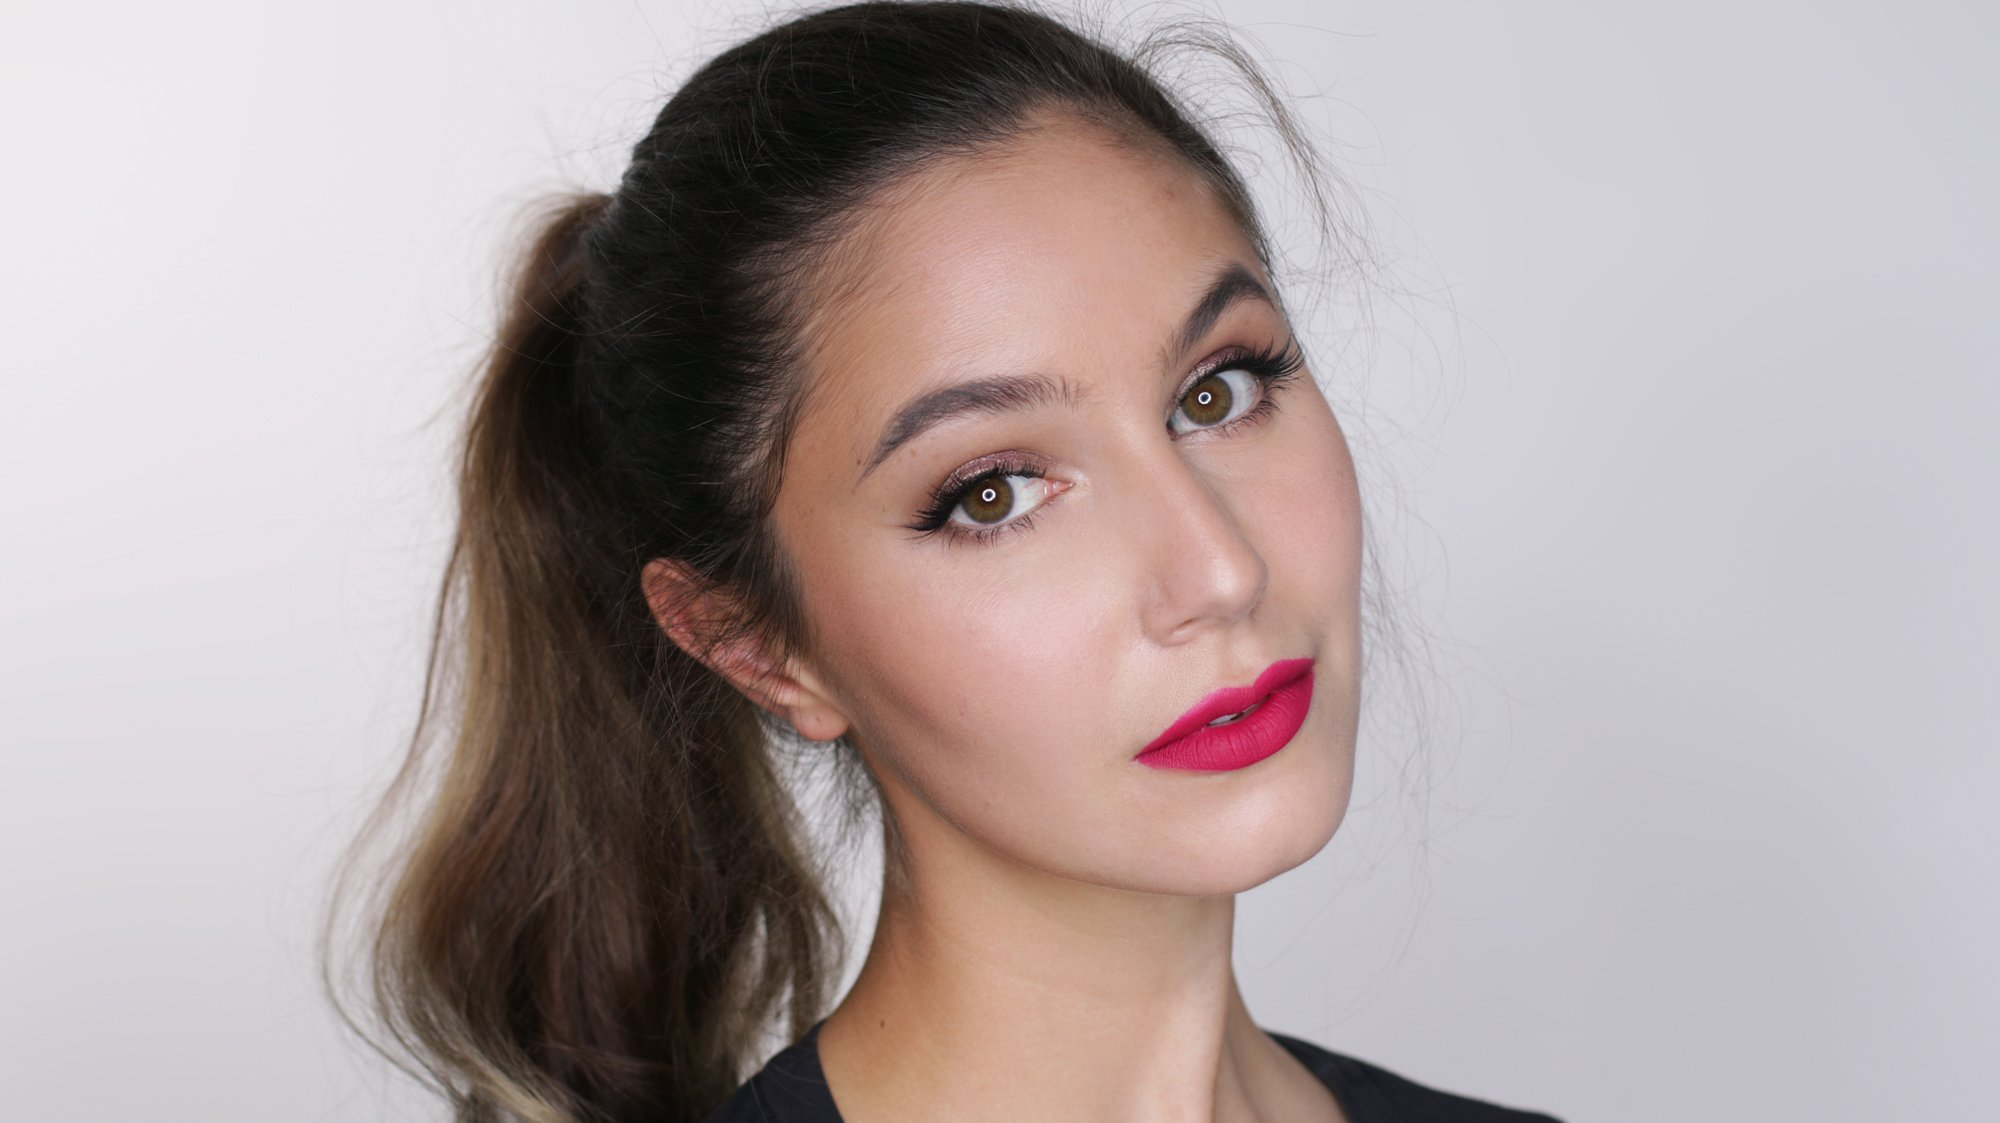 Chanel Les Beiges Healthy Glow Foundation – First Impressions